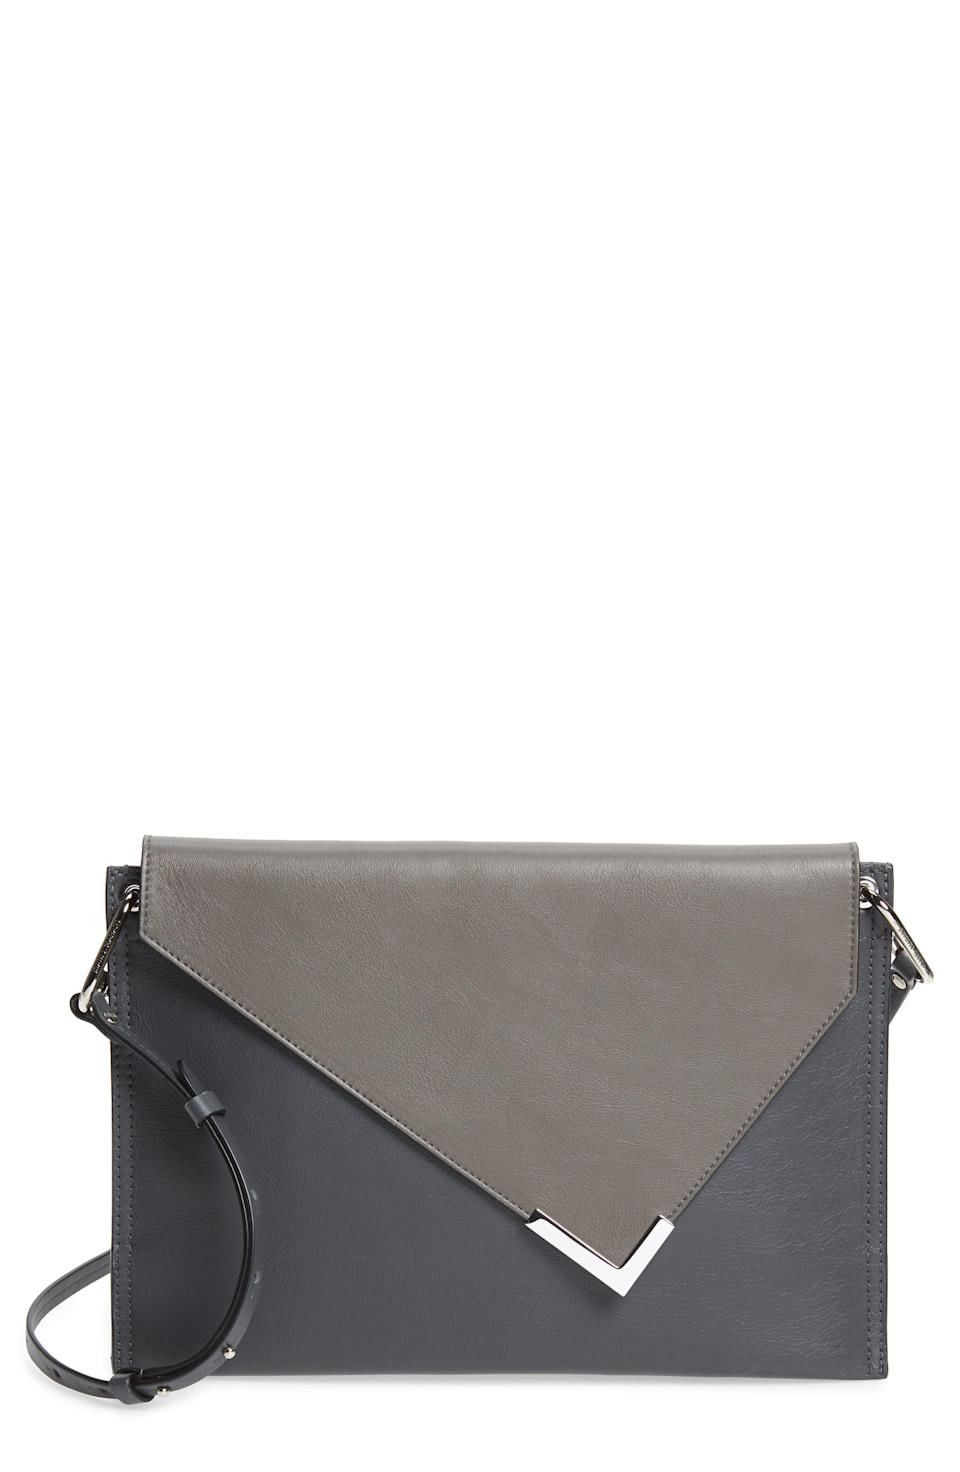 """<p><strong>ISABEL MARANT</strong></p><p>nordstrom.com</p><p><strong>$438.00</strong></p><p><a href=""""https://go.redirectingat.com?id=74968X1596630&url=https%3A%2F%2Fwww.nordstrom.com%2Fs%2Fisabel-marant-tryne-colorblock-leather-shoulder-bag%2F5764878&sref=https%3A%2F%2Fwww.marieclaire.com%2Ffashion%2Fg35090742%2Fnordstrom-half-yearly-sale-2020%2F"""" rel=""""nofollow noopener"""" target=""""_blank"""" data-ylk=""""slk:Shop Now"""" class=""""link rapid-noclick-resp"""">Shop Now</a></p>"""